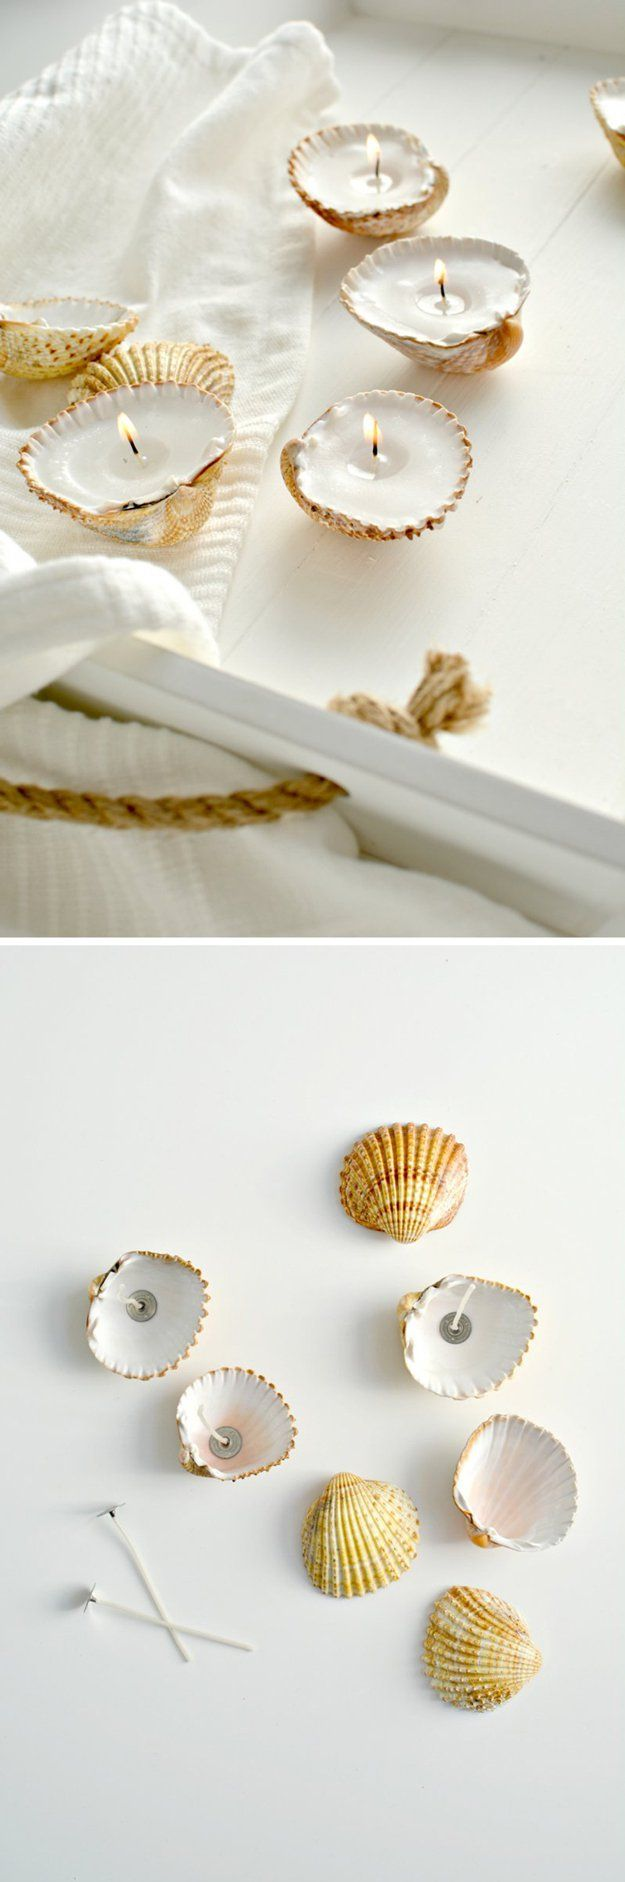 1000 images about shell crafts on pinterest sea shells for Diy shell crafts